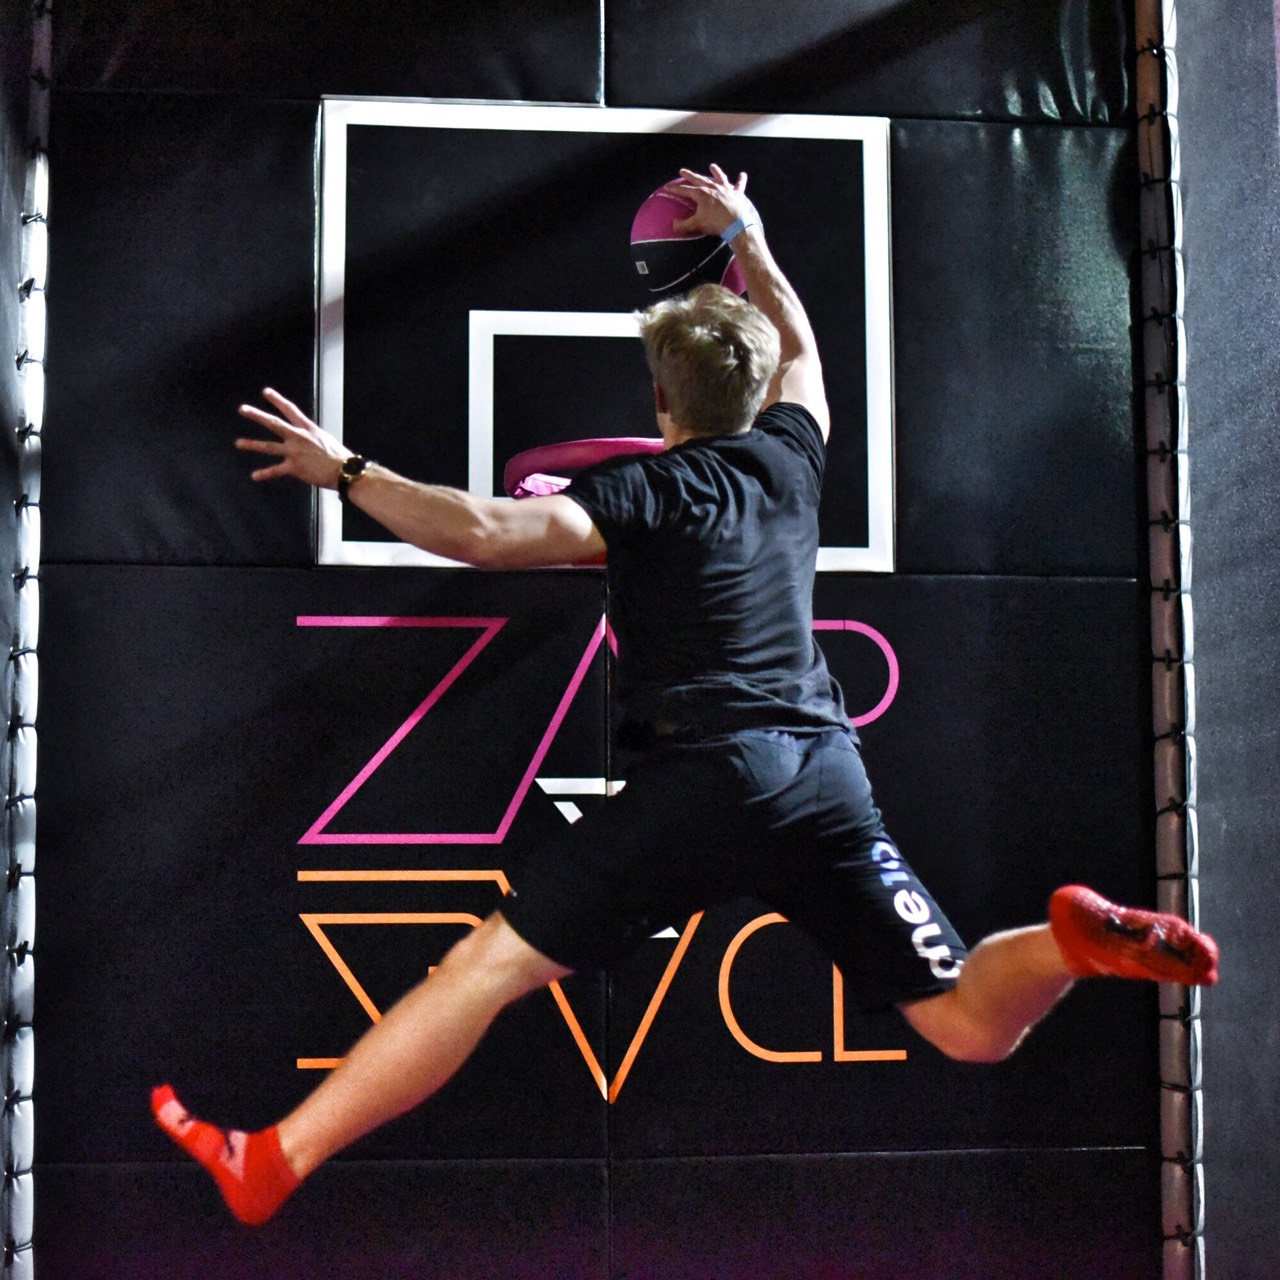 trampolining fun at zapspace